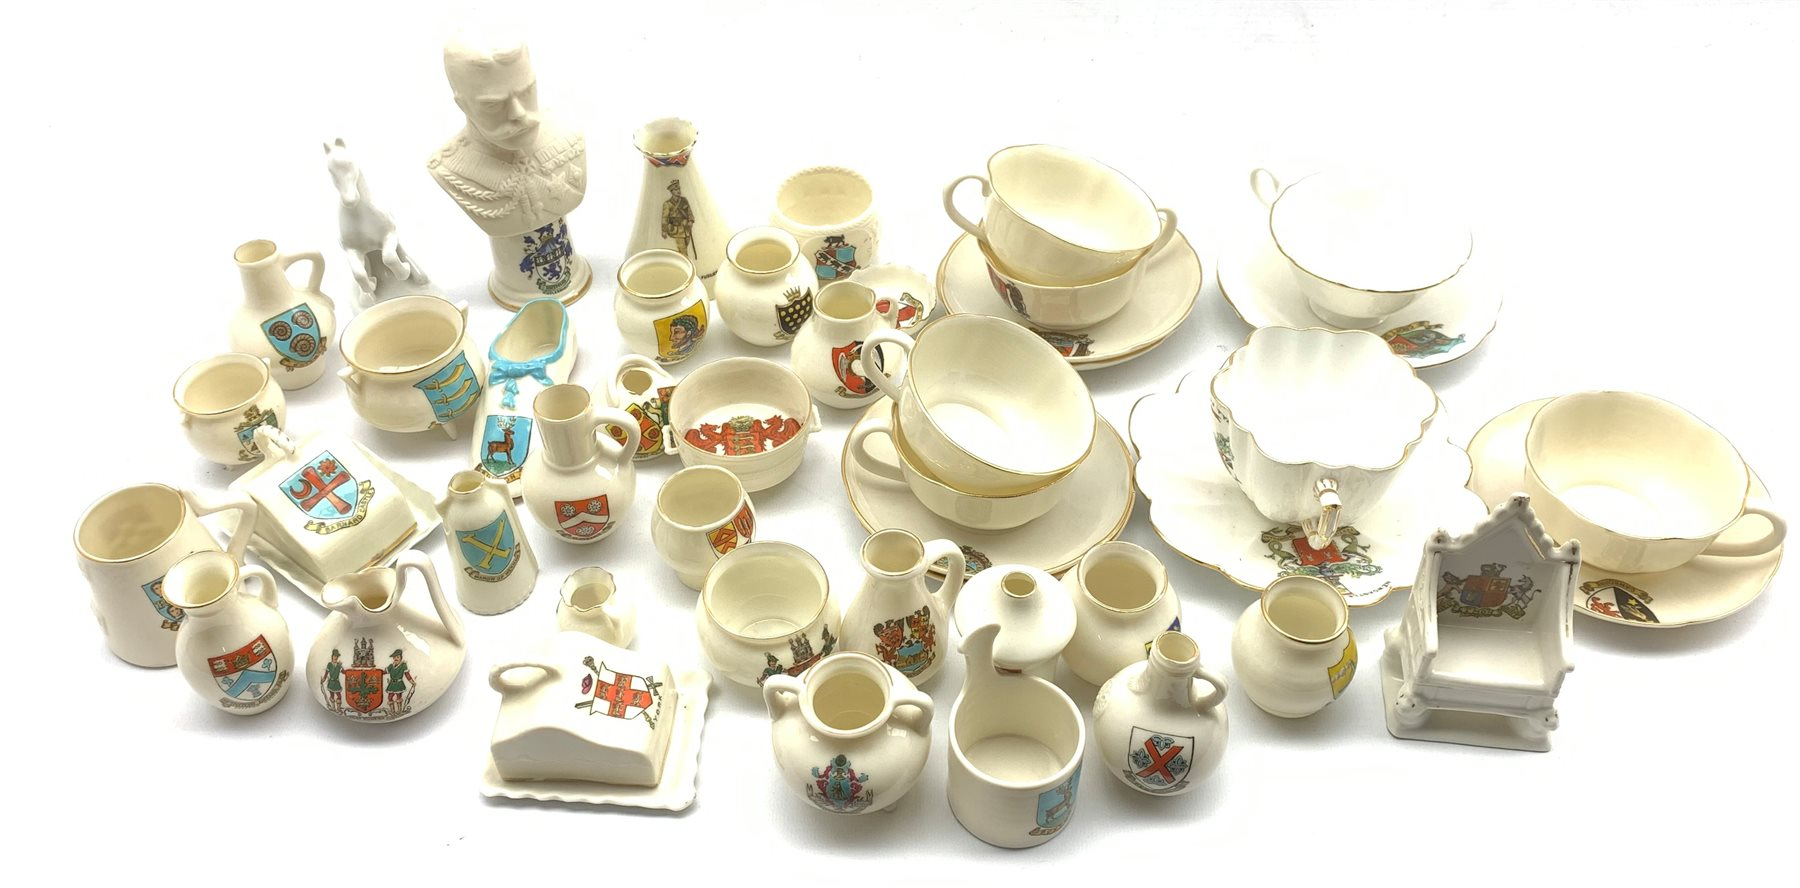 Collection of W.H. Goss and other crested ware including: Model of Queen Victoria's baby shoe, the e